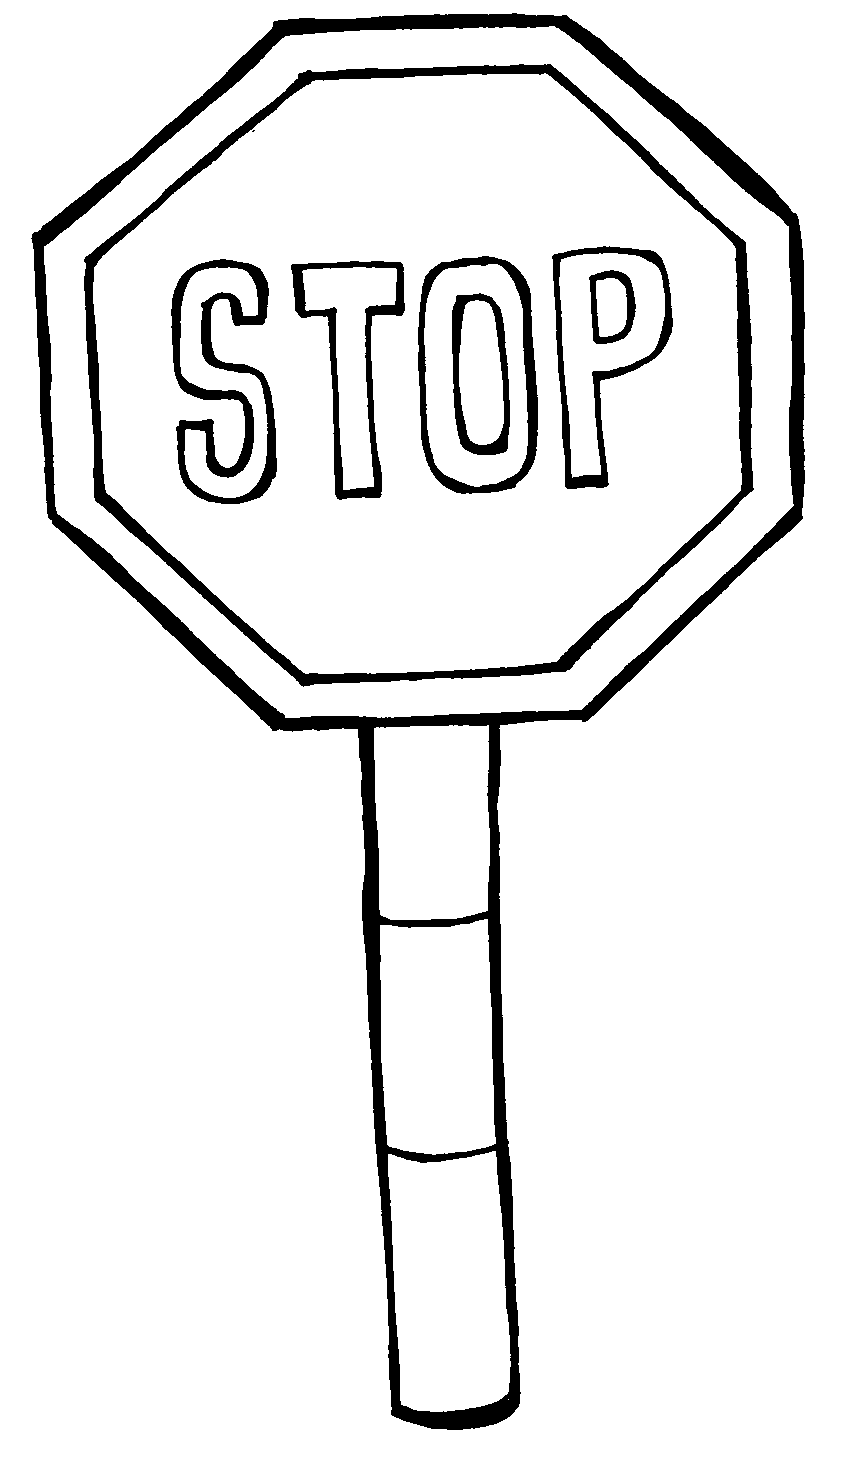 signs coloring pages - photo#13